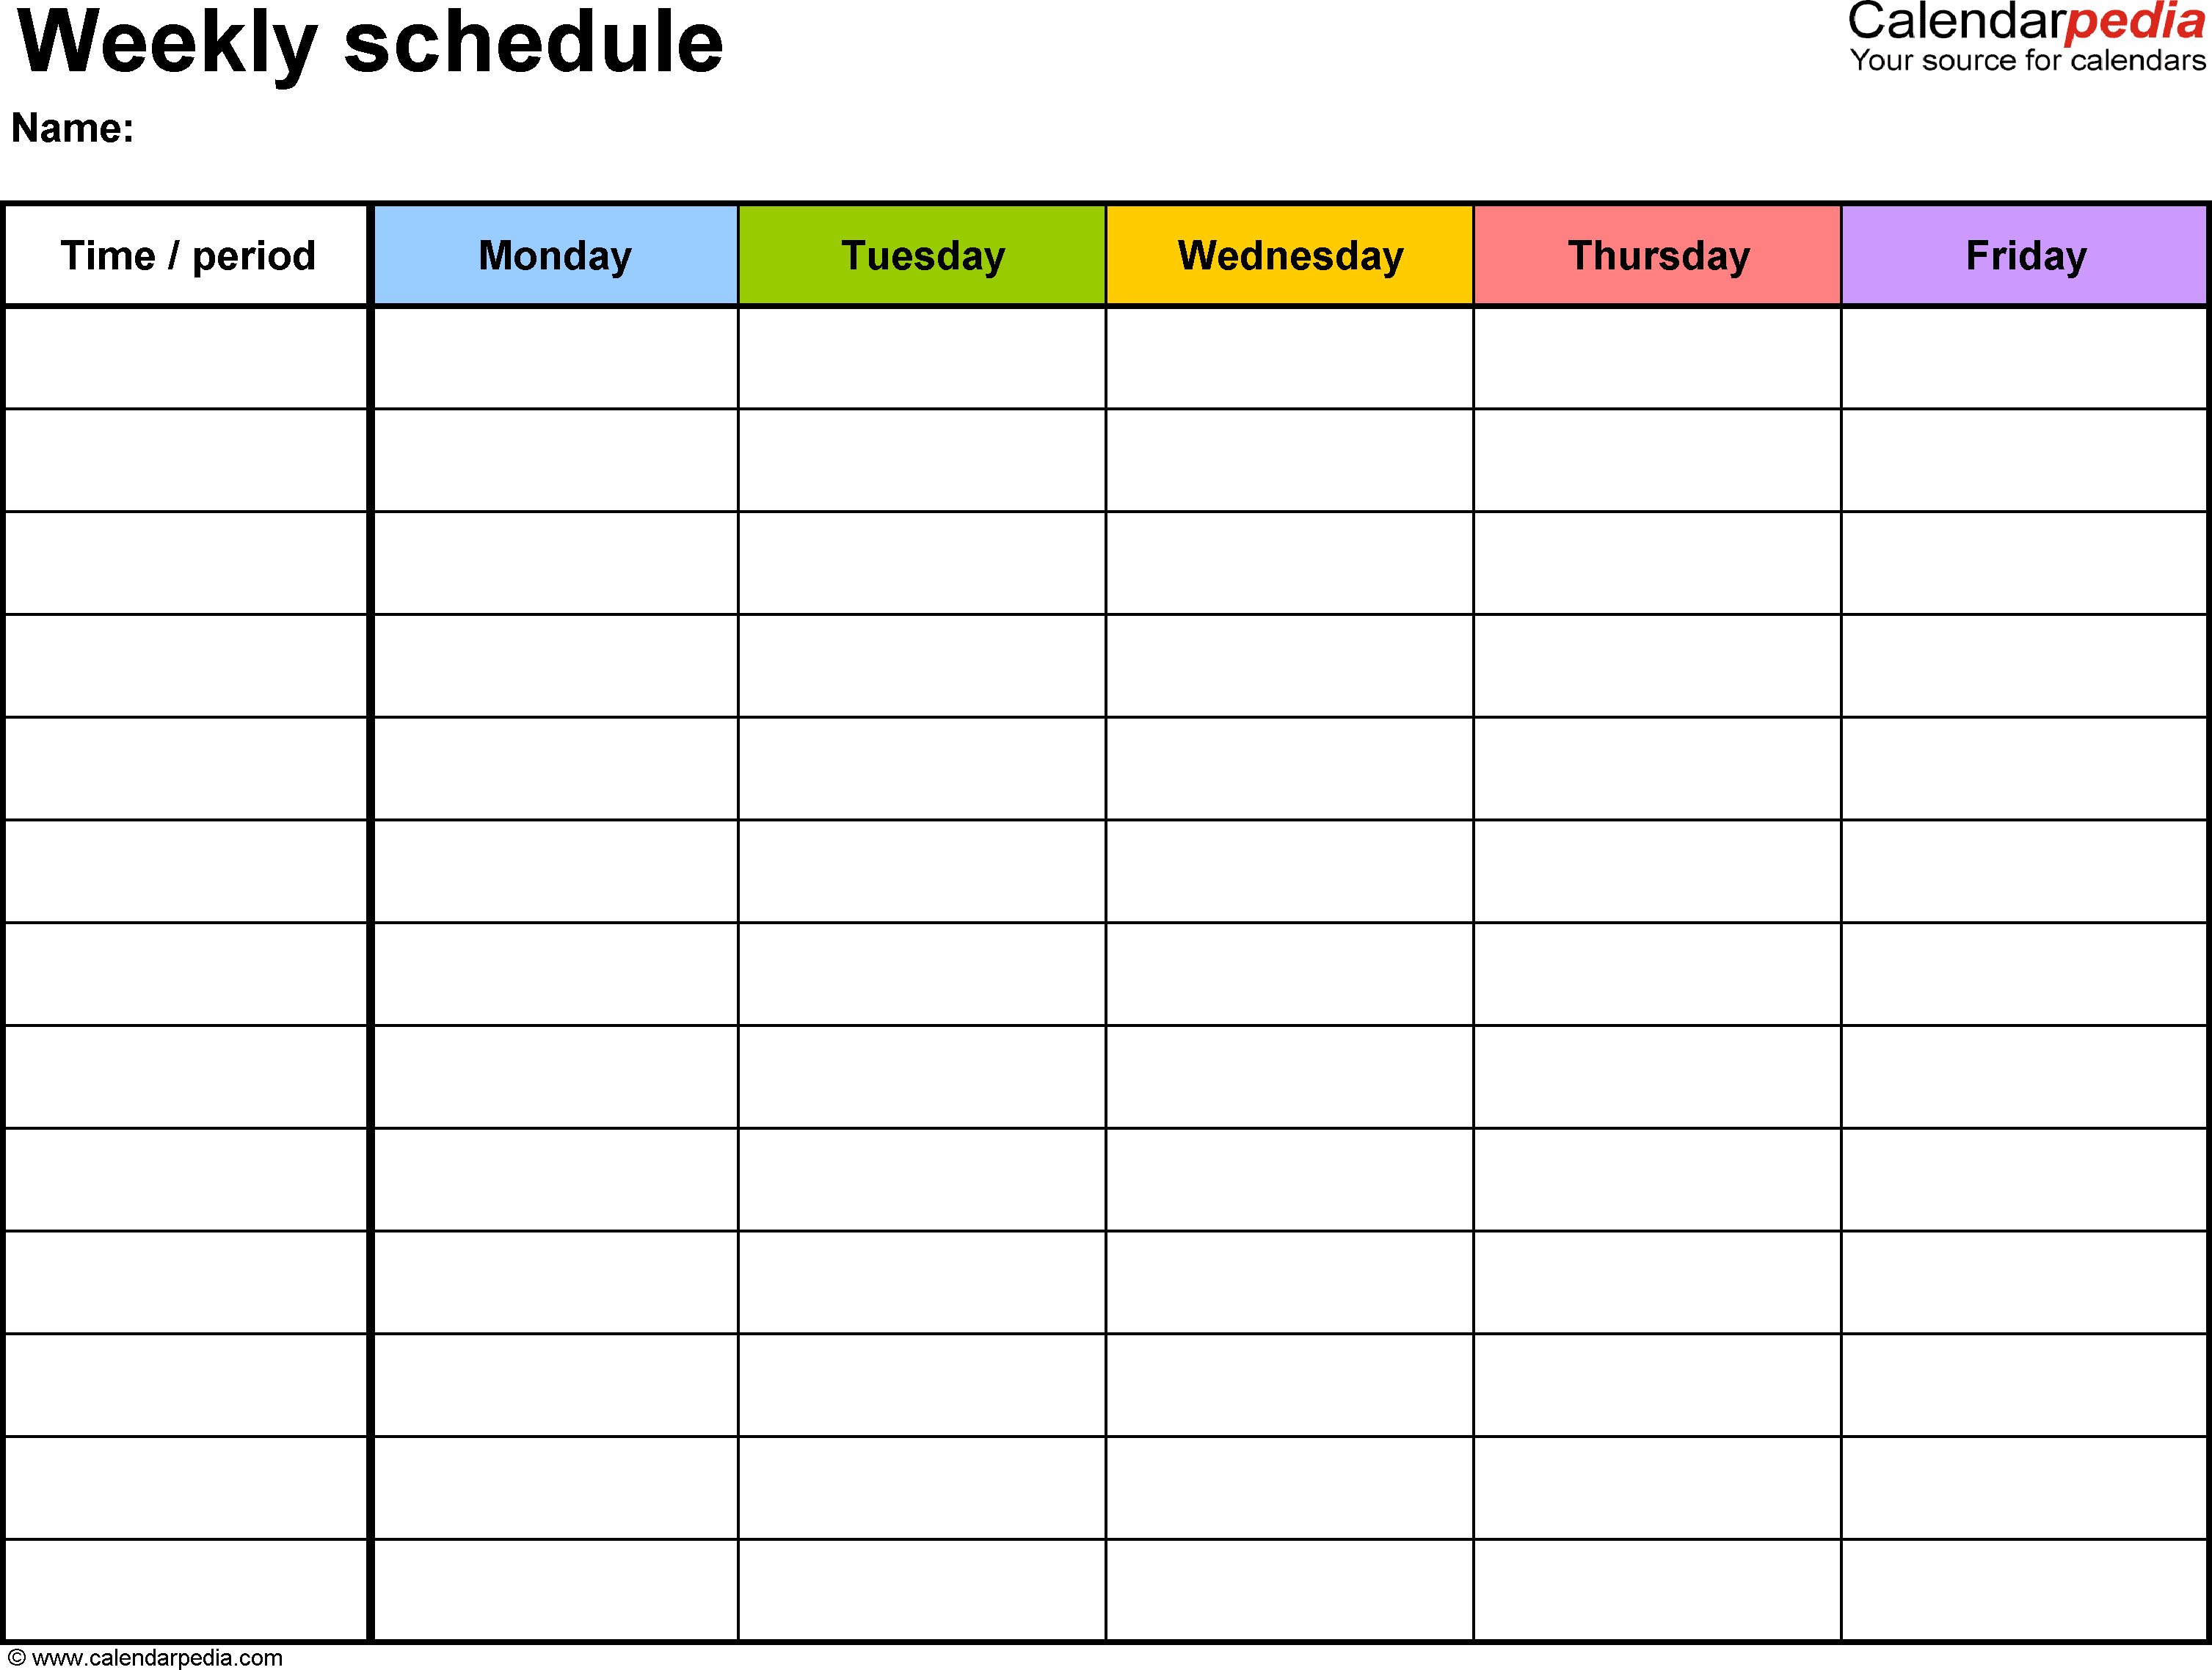 Weekly Downloadable Calendar  Bolan.horizonconsulting.co intended for Printable Weekly Calendar